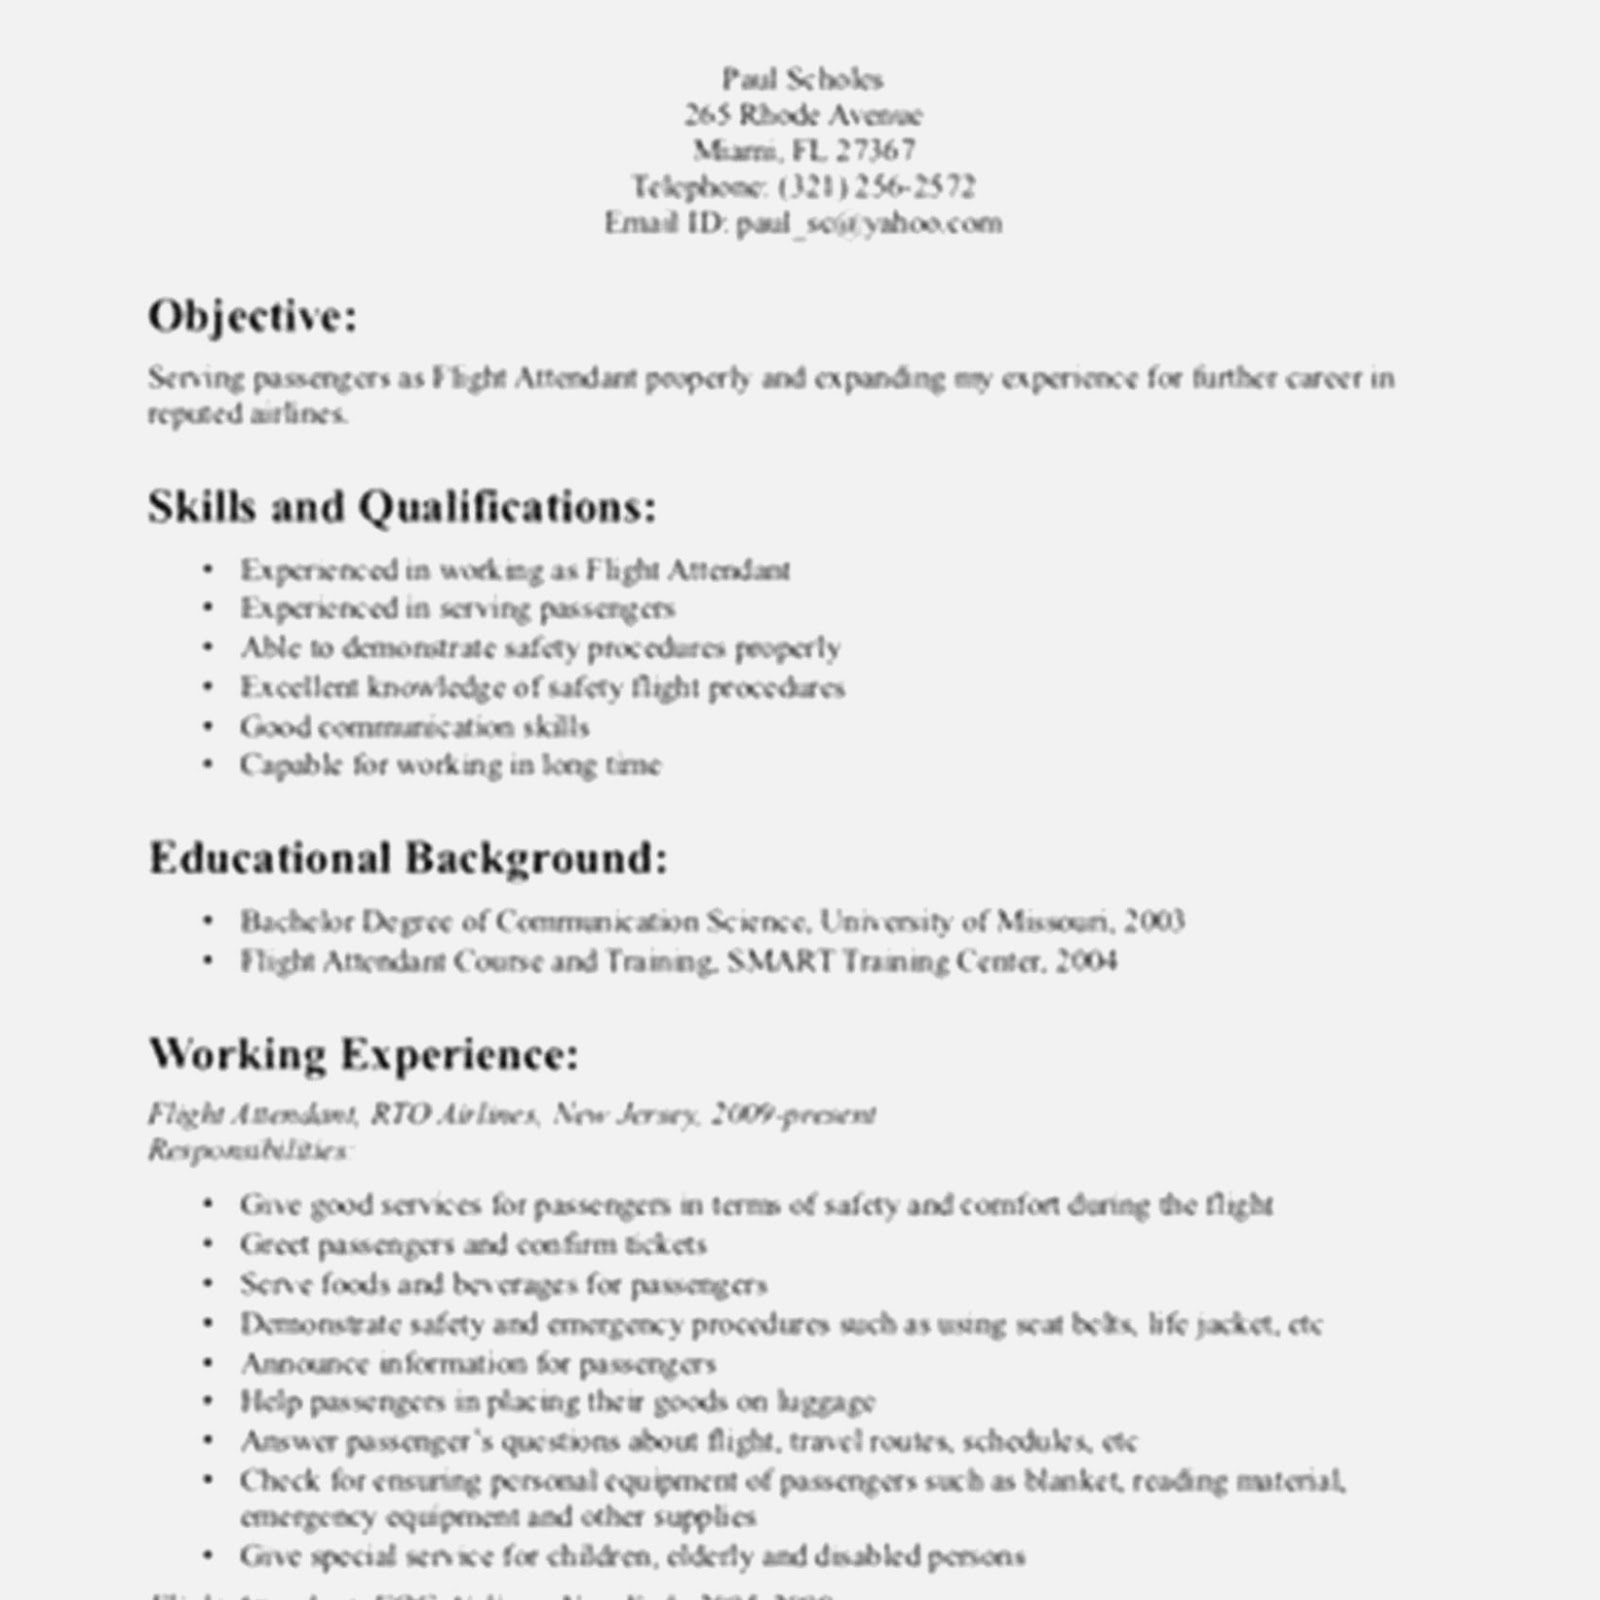 flight attendant resume examples, flight attendant resume examples no experience, flight attendant resume example, flight attendant resume samples, flight attendant resume objective examples, flight attendant resume example objective, corporate flight attendant resume examples, flight attendant curriculum vitae example,